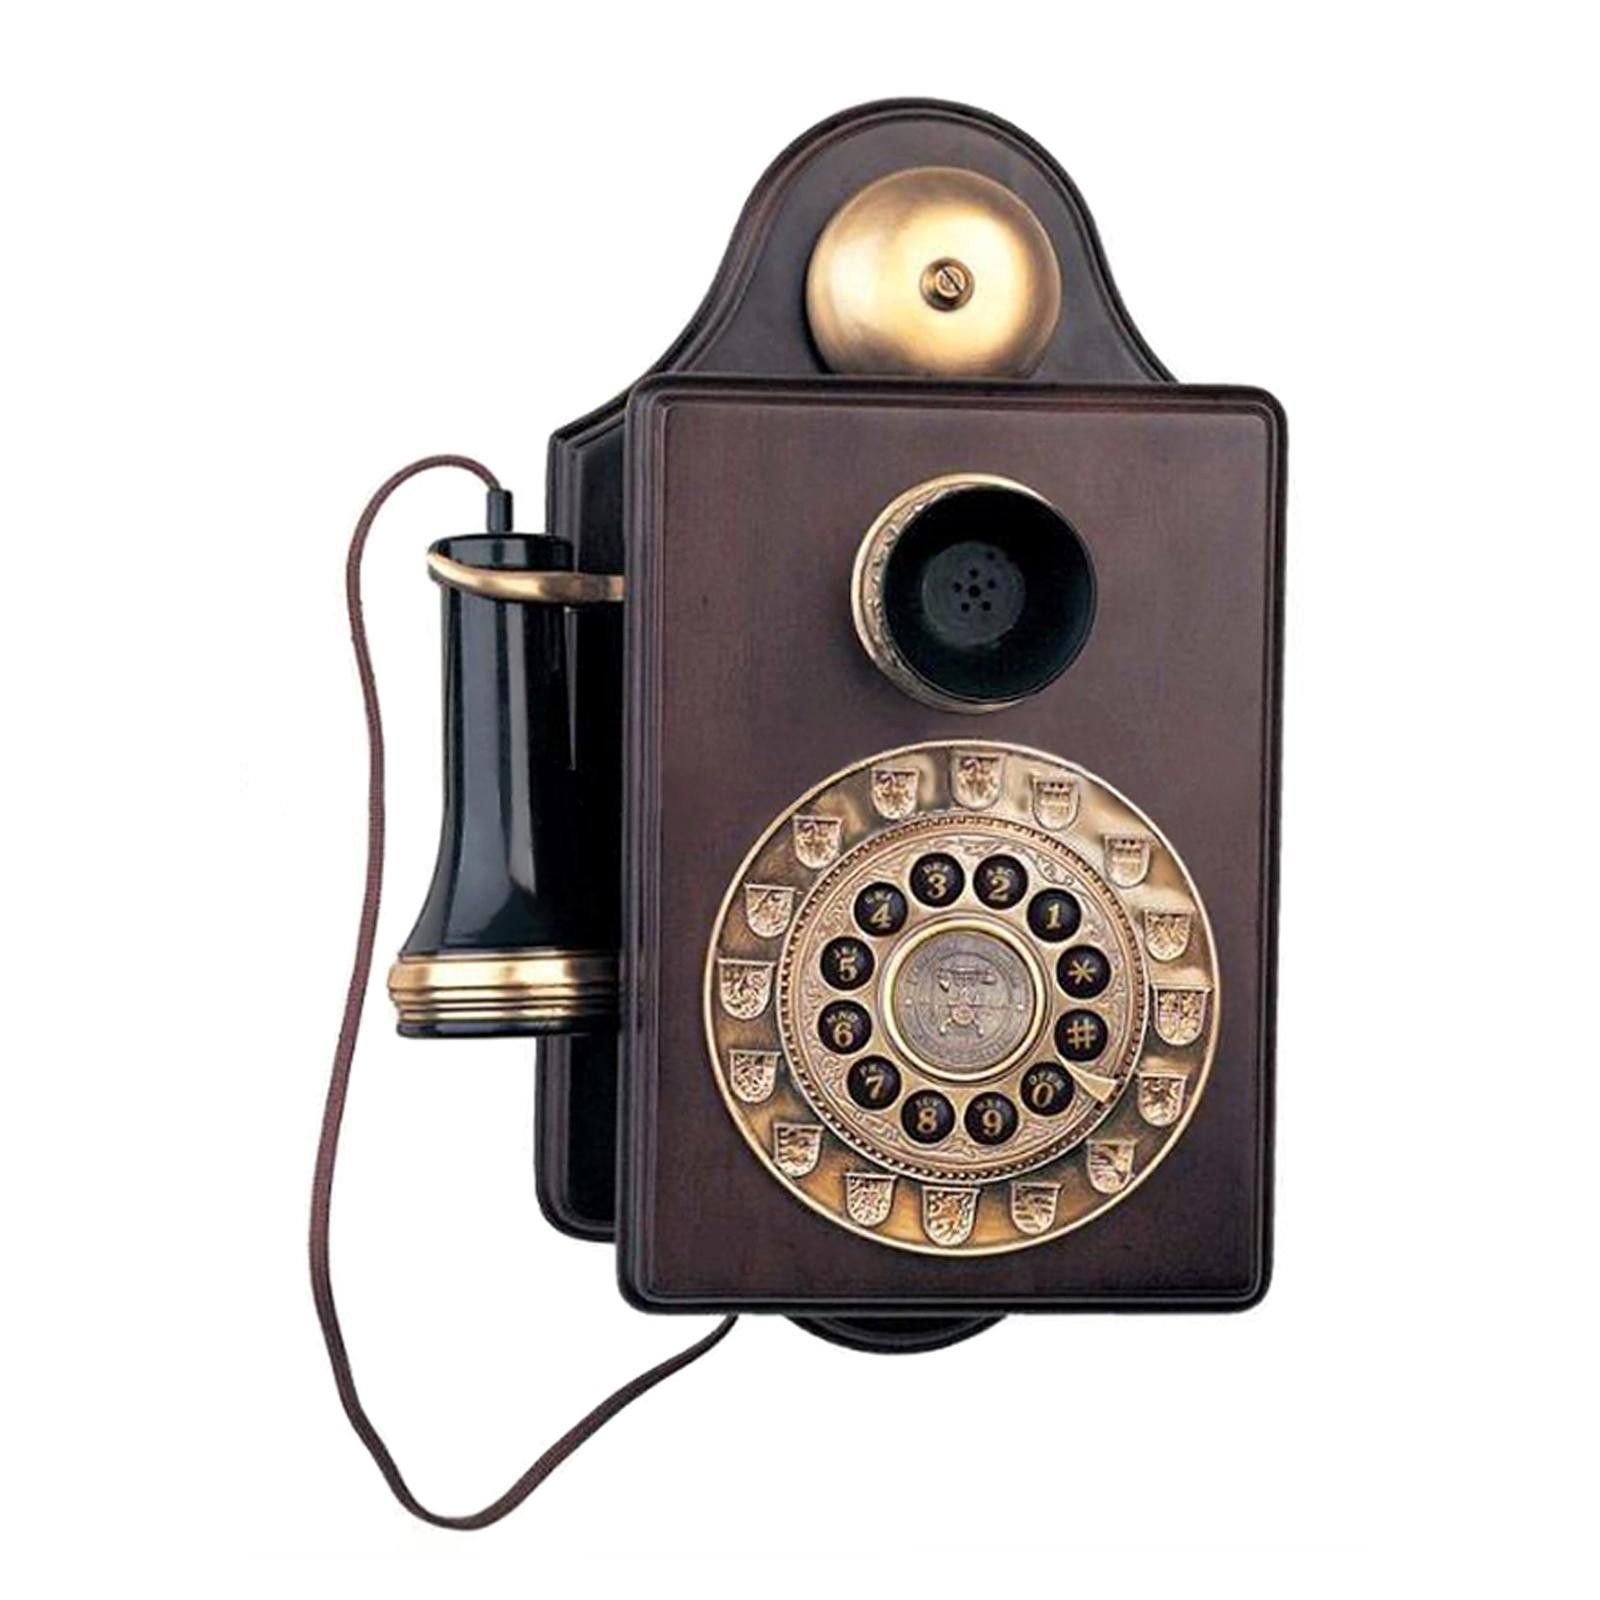 Antique Wall Reproduction Novelty Phone